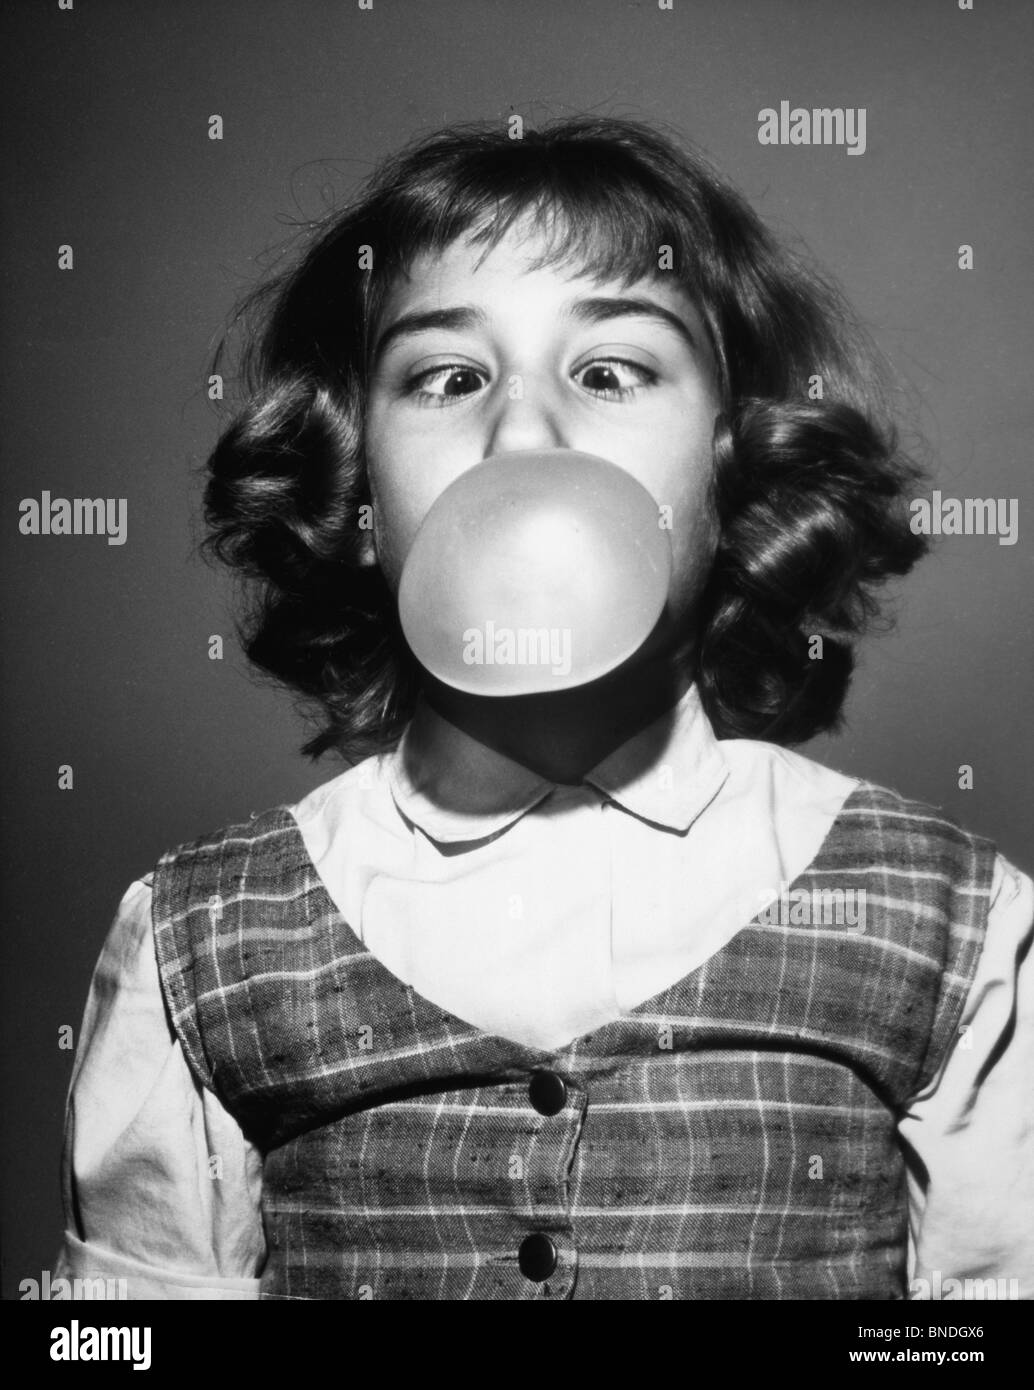 Close-up of a Girl blowing une bulle Banque D'Images